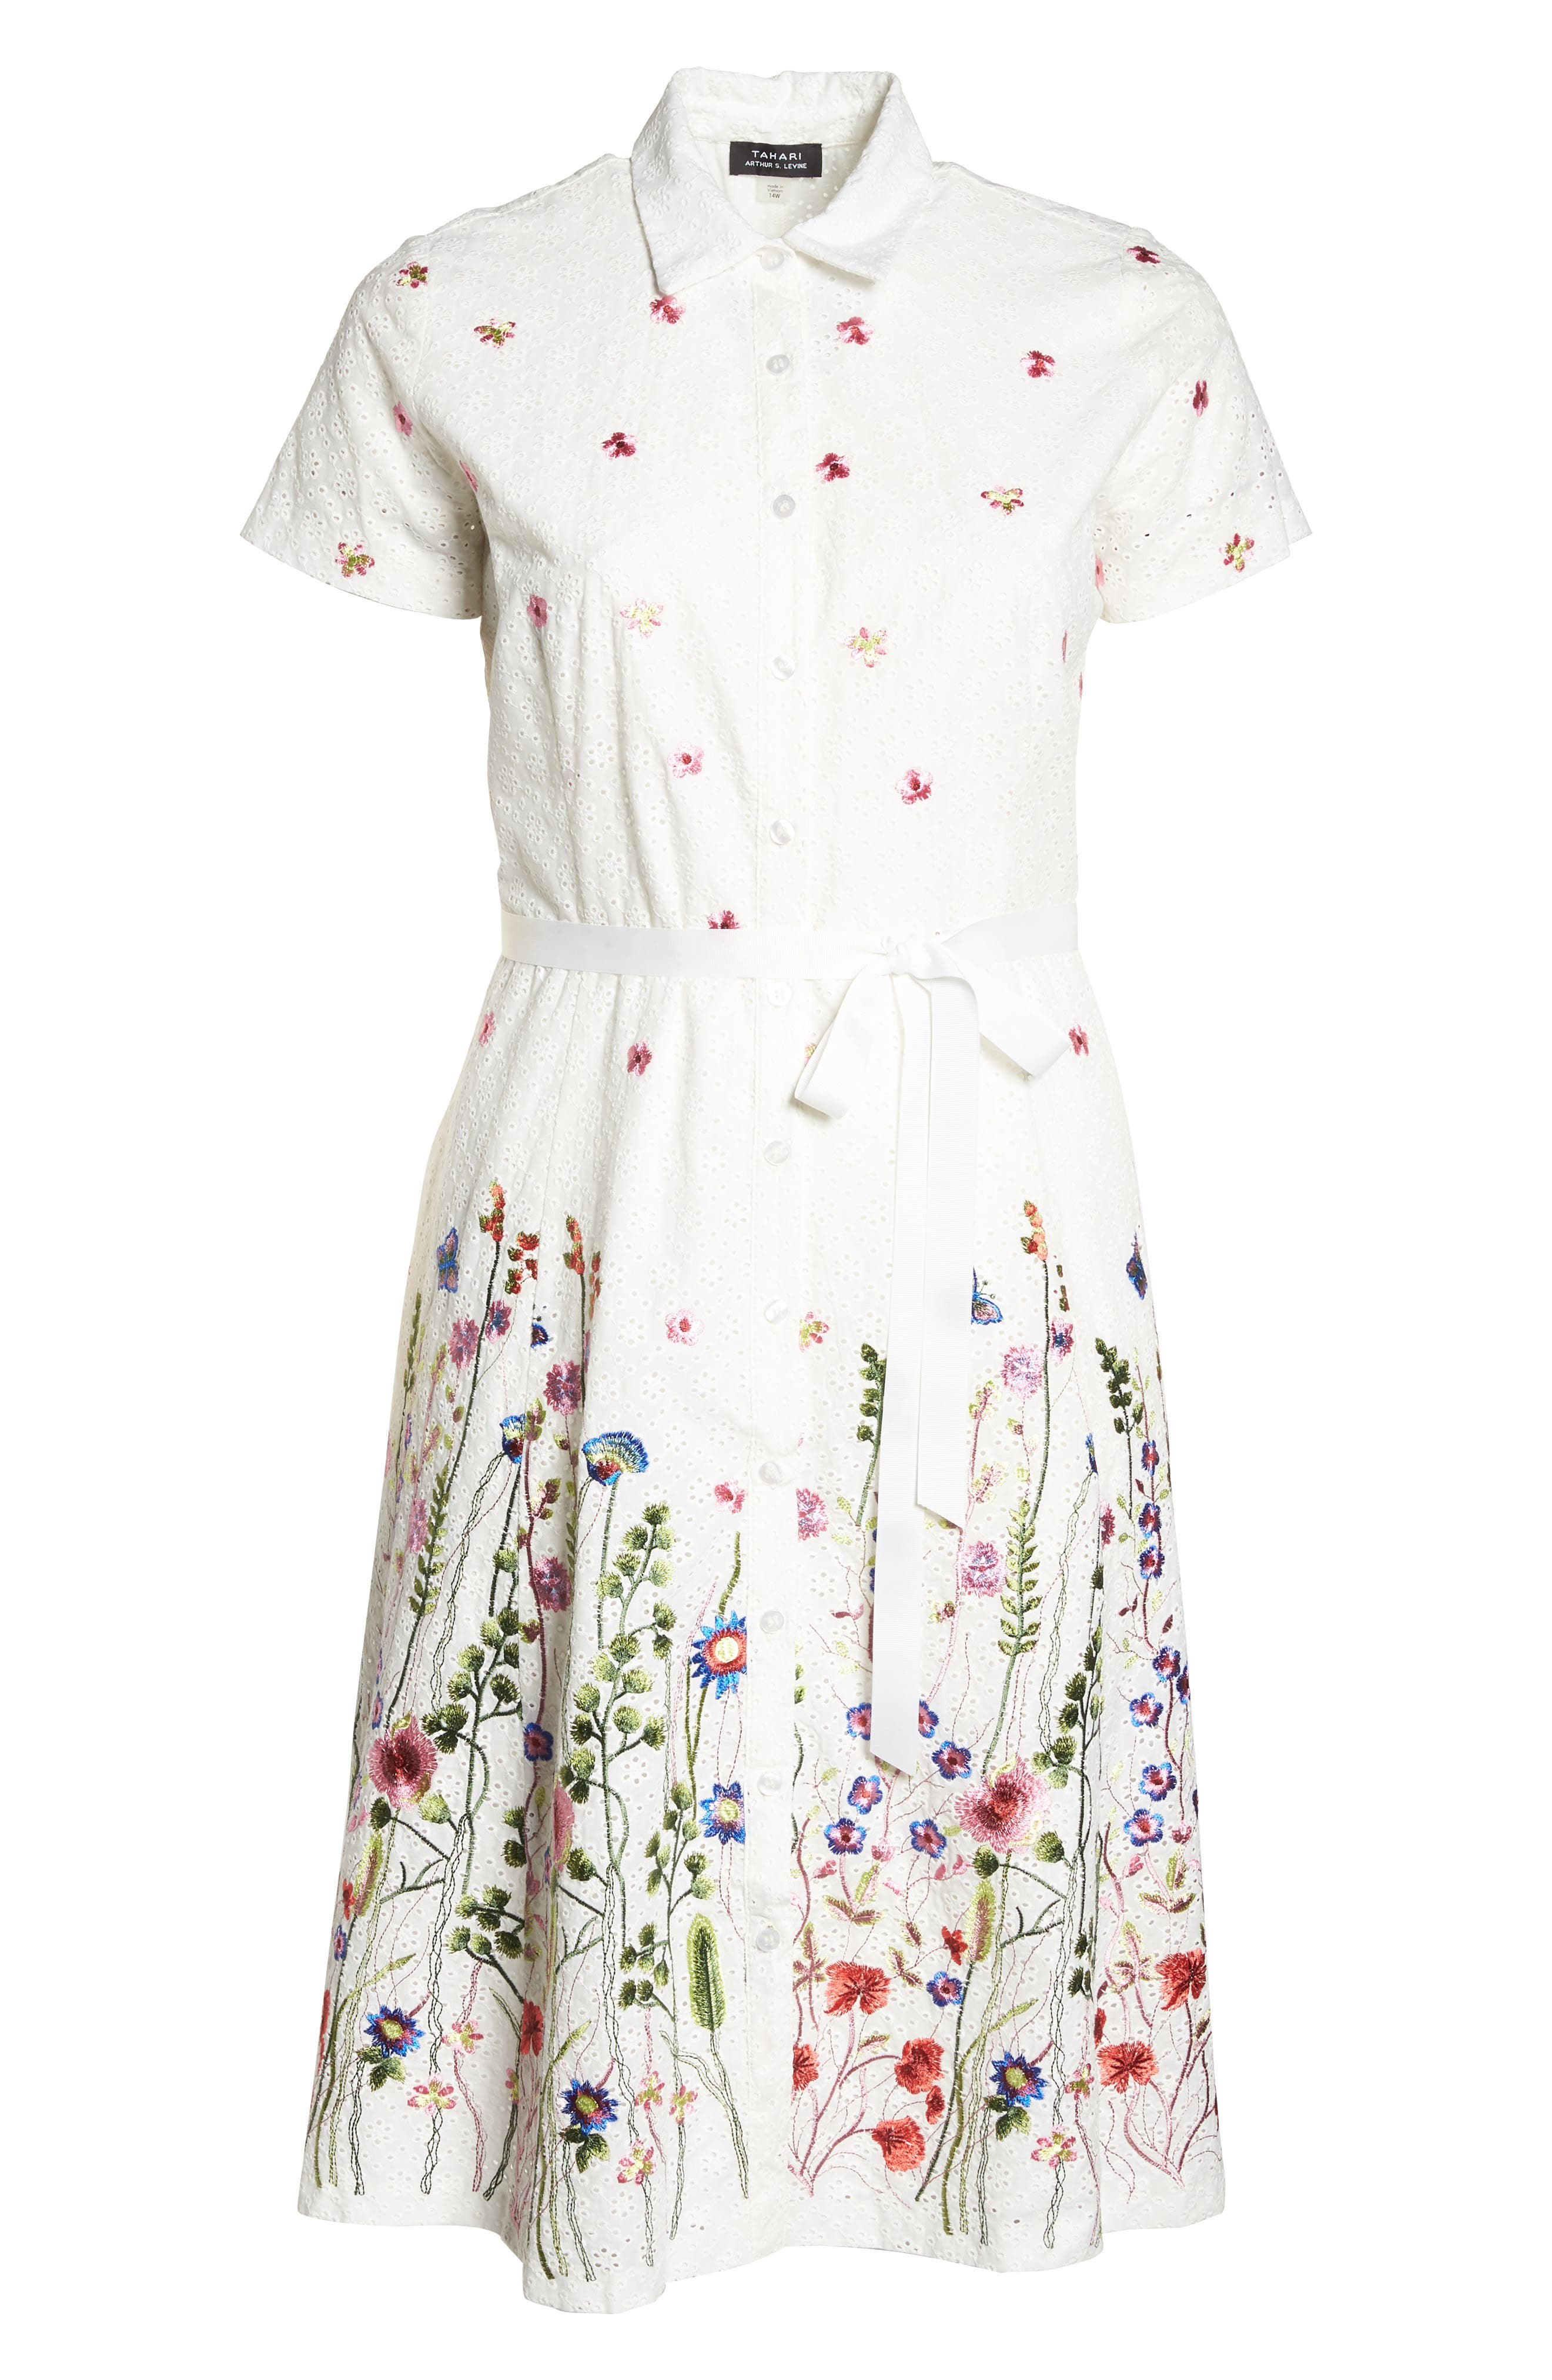 Floral Embroidered Eyelet Shirtdress,                             Alternate thumbnail 6, color,                             179